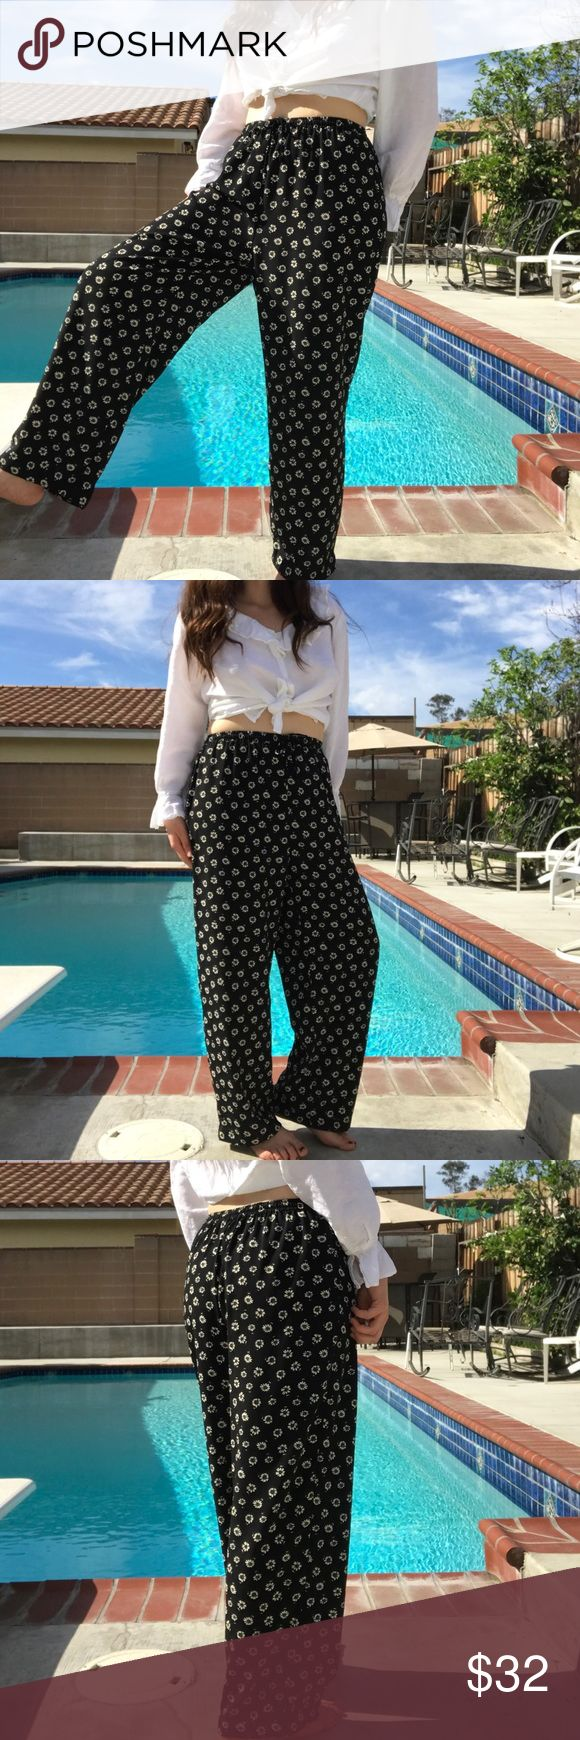 """floral trousers one size fits most. Stretchy waist. Not by UO--vintage  🌿SIZE REFERENCE:🌿  5'5""""/ 135lbs / 36-A /med. in tops, sweaters and dresses and pants  🌈 REASONABLE OFFERS ACCEPTED 🌈  🌼BUNDLE FOR BIGGER DISCOUNT🌼 Urban Outfitters Pants Trousers"""